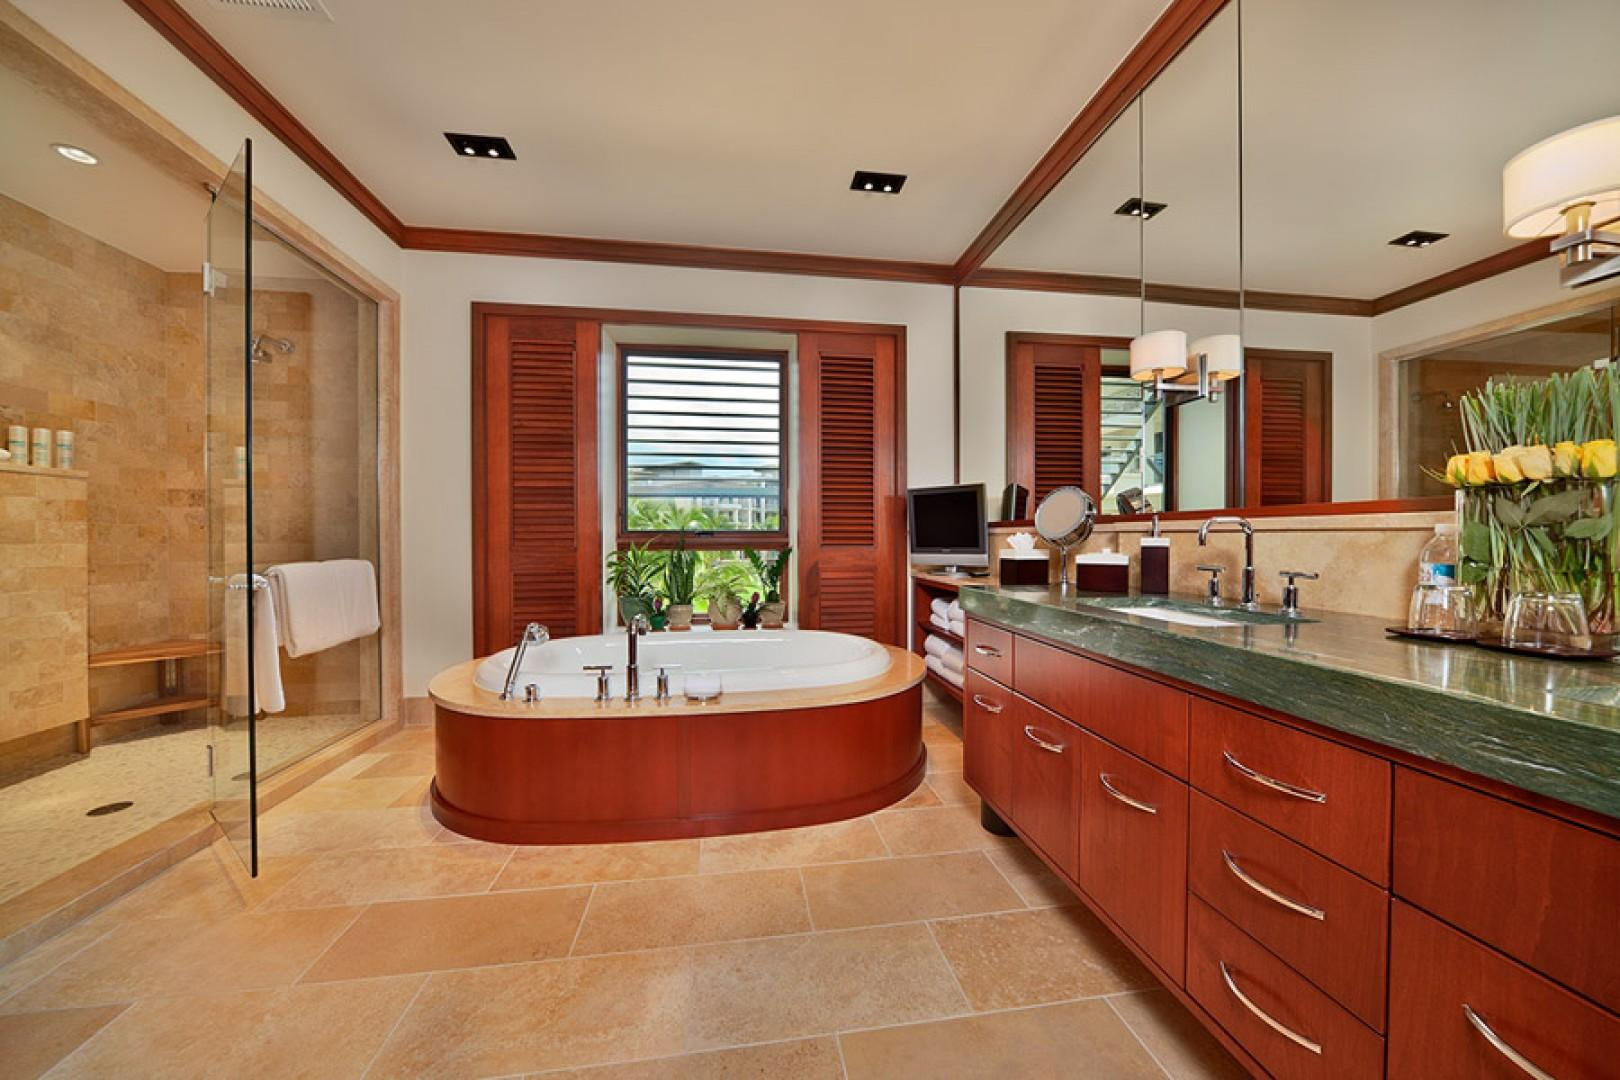 Sea Mist Villa 2403 - Master Bedroom Bath with Deep Tub, Television, Robes, Private WC, Dual Walk-in Shower, Dual Vanities, Scale, Make up mirror, Hair Dryer